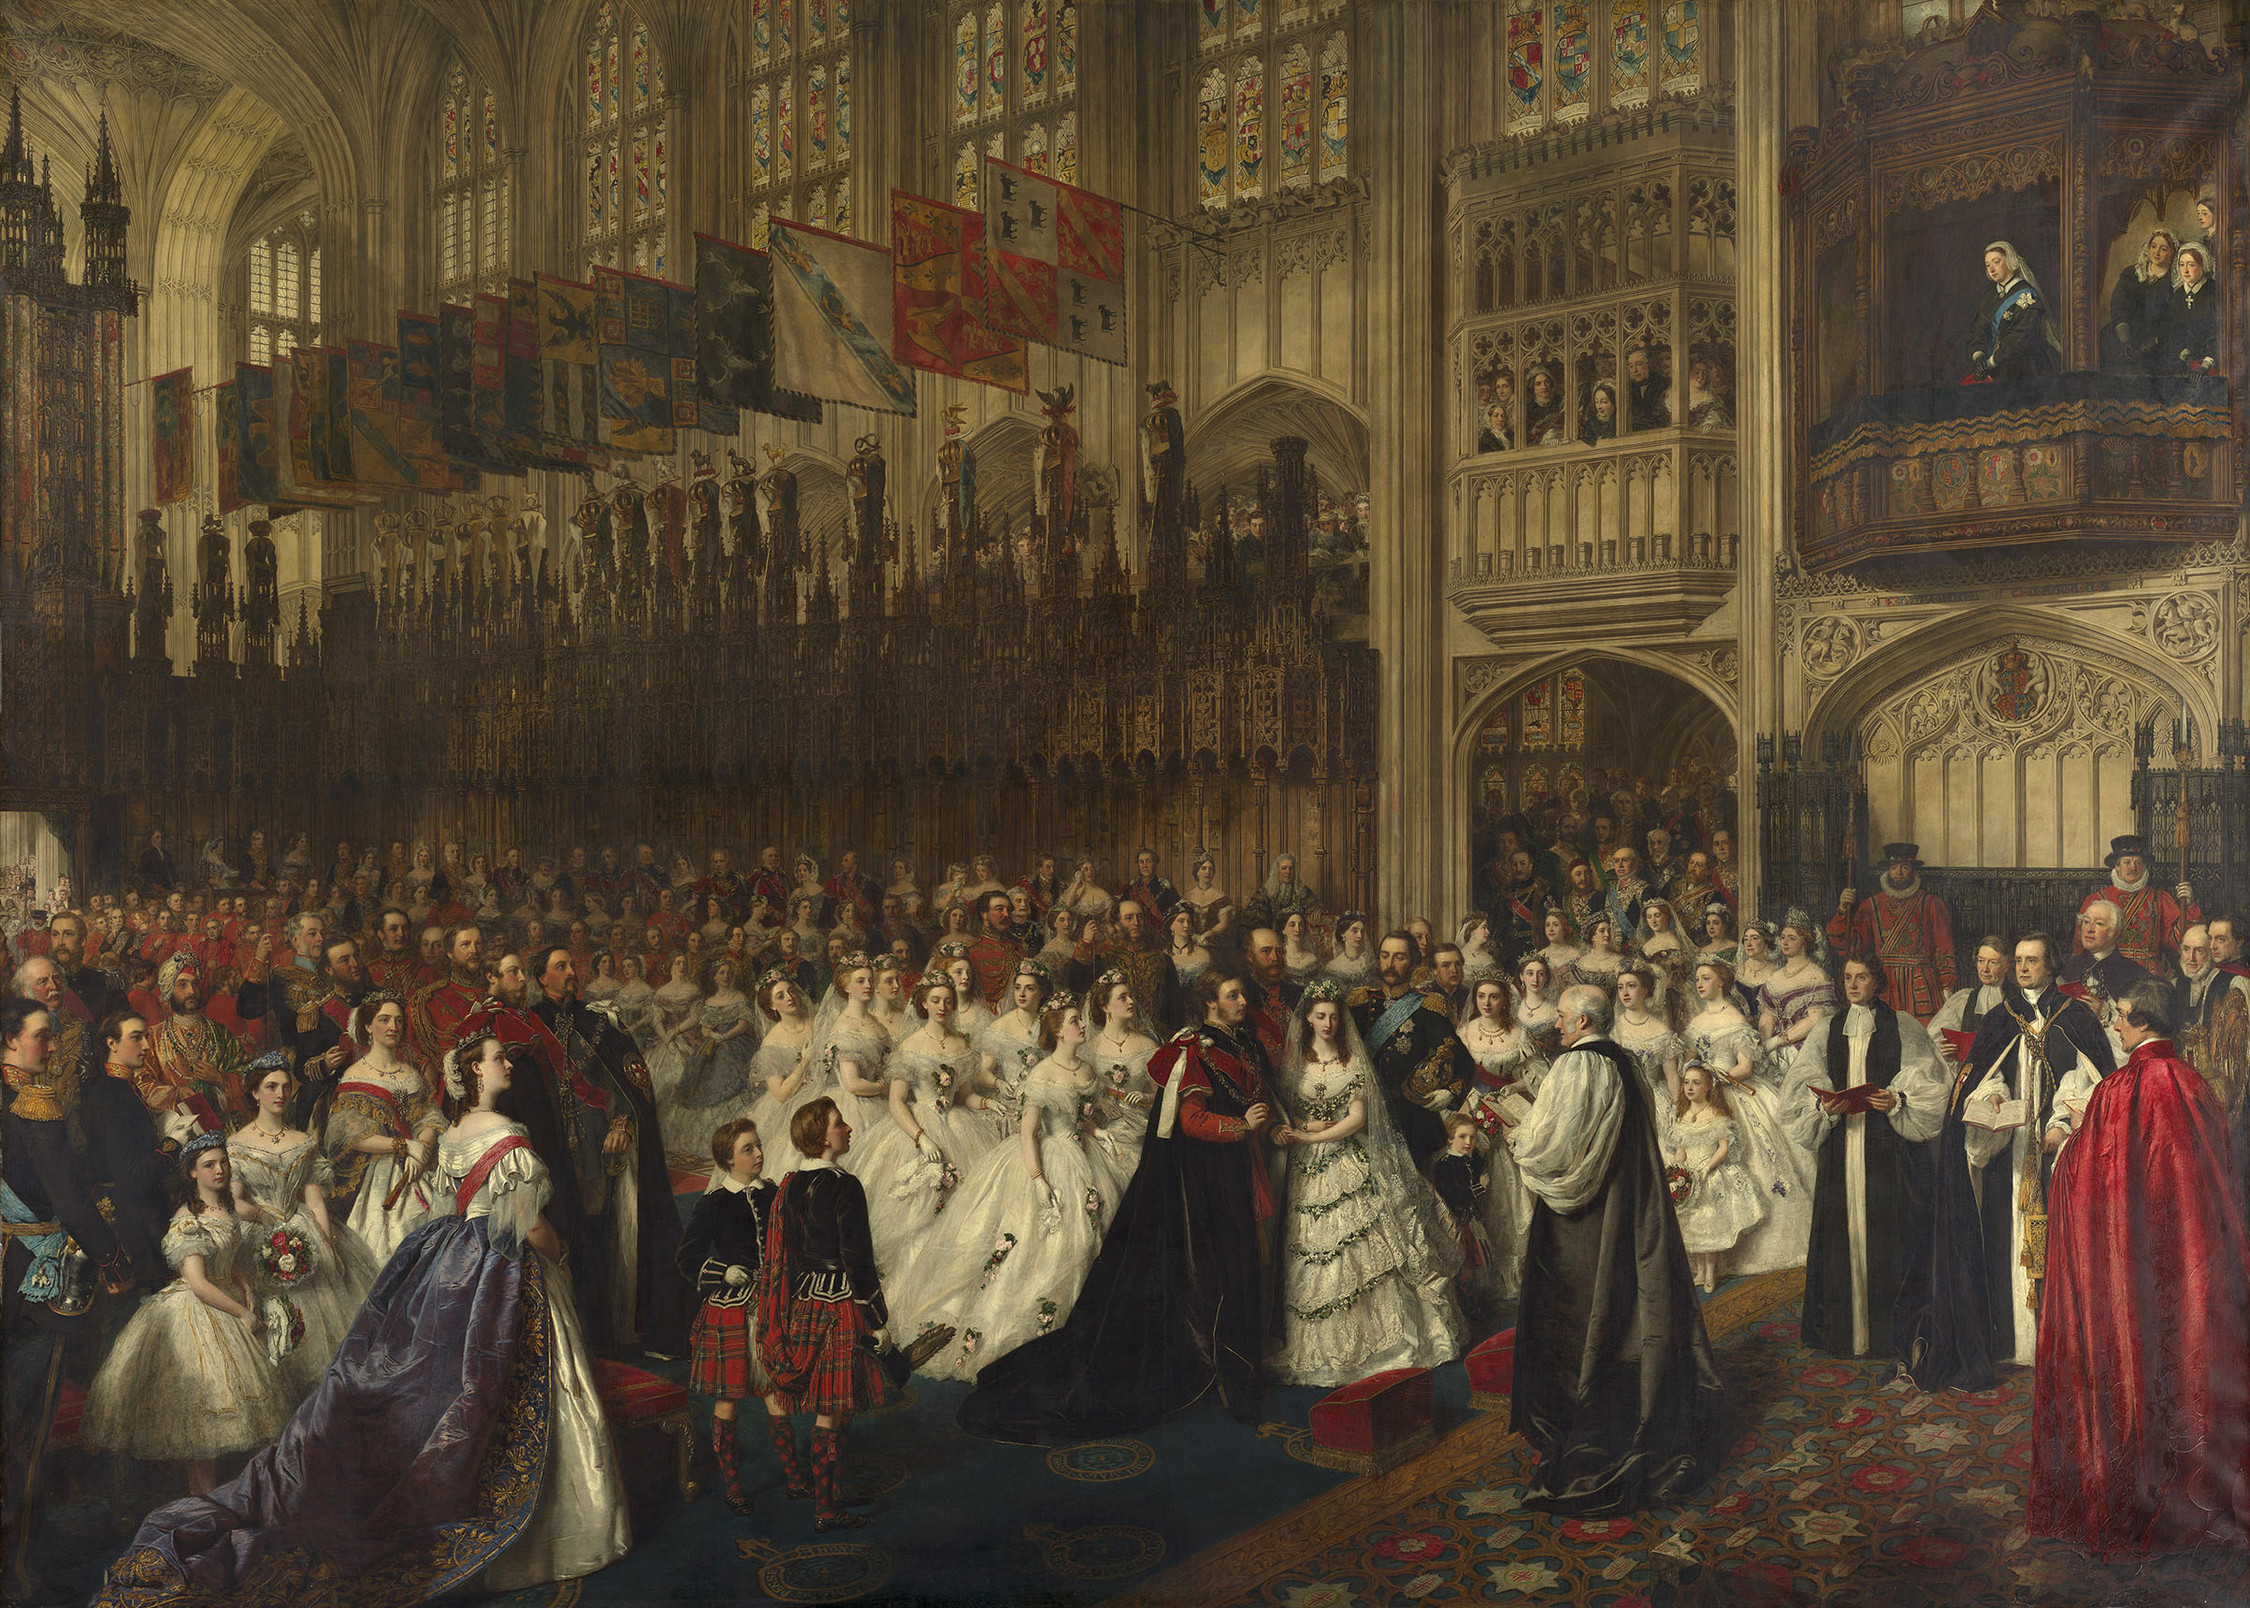 William Powell Frith, The Marriage of the Prince of Wales with Princess Alexandra of Denmark, ca. 1863-65, Royal Collection Trust, London, UK. queen victoria weddings